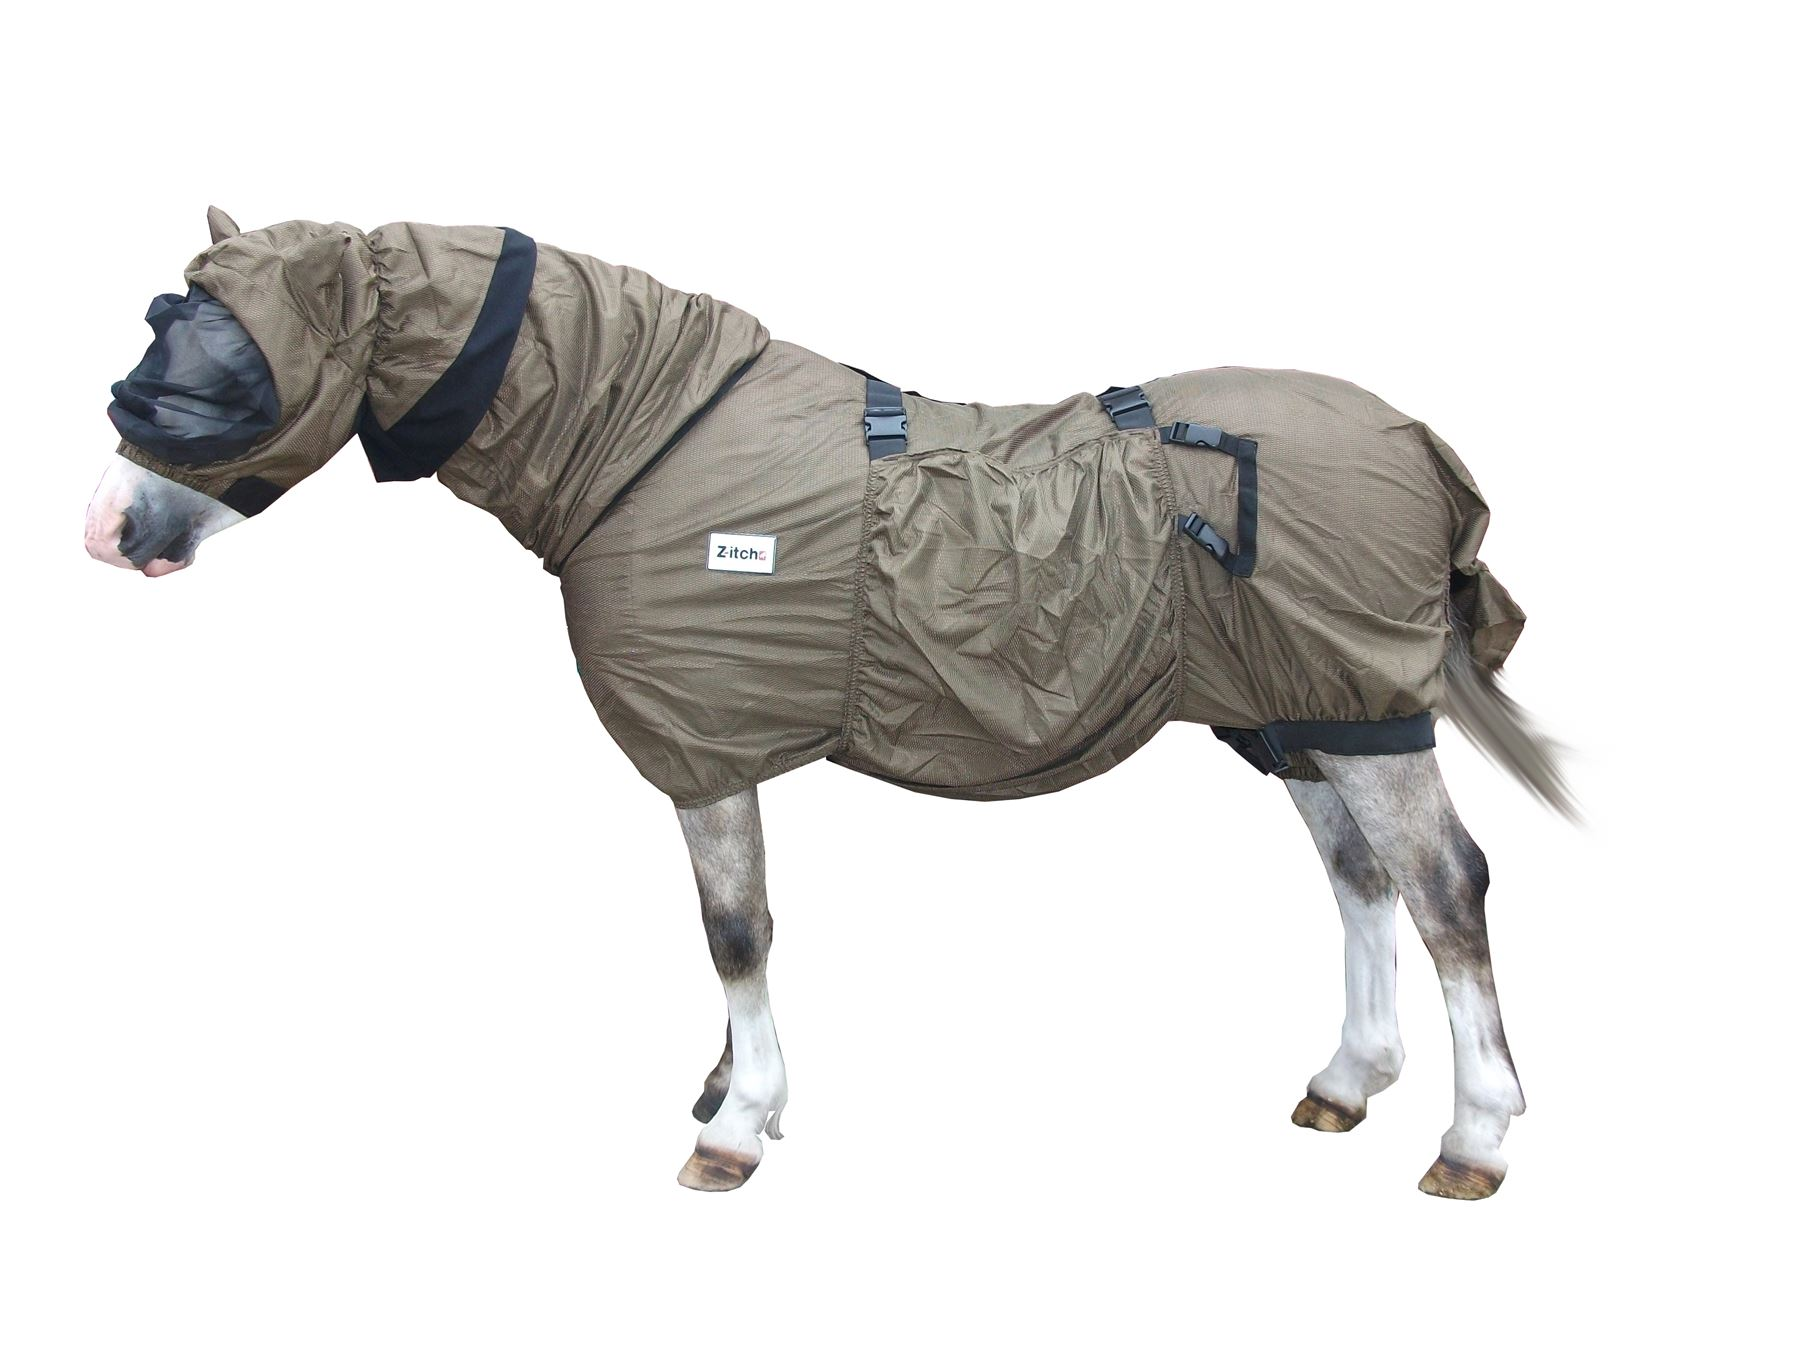 Z-Itch Prurito  Coperta C W Hood Equino Cavallo Mosca ,  great selection & quick delivery